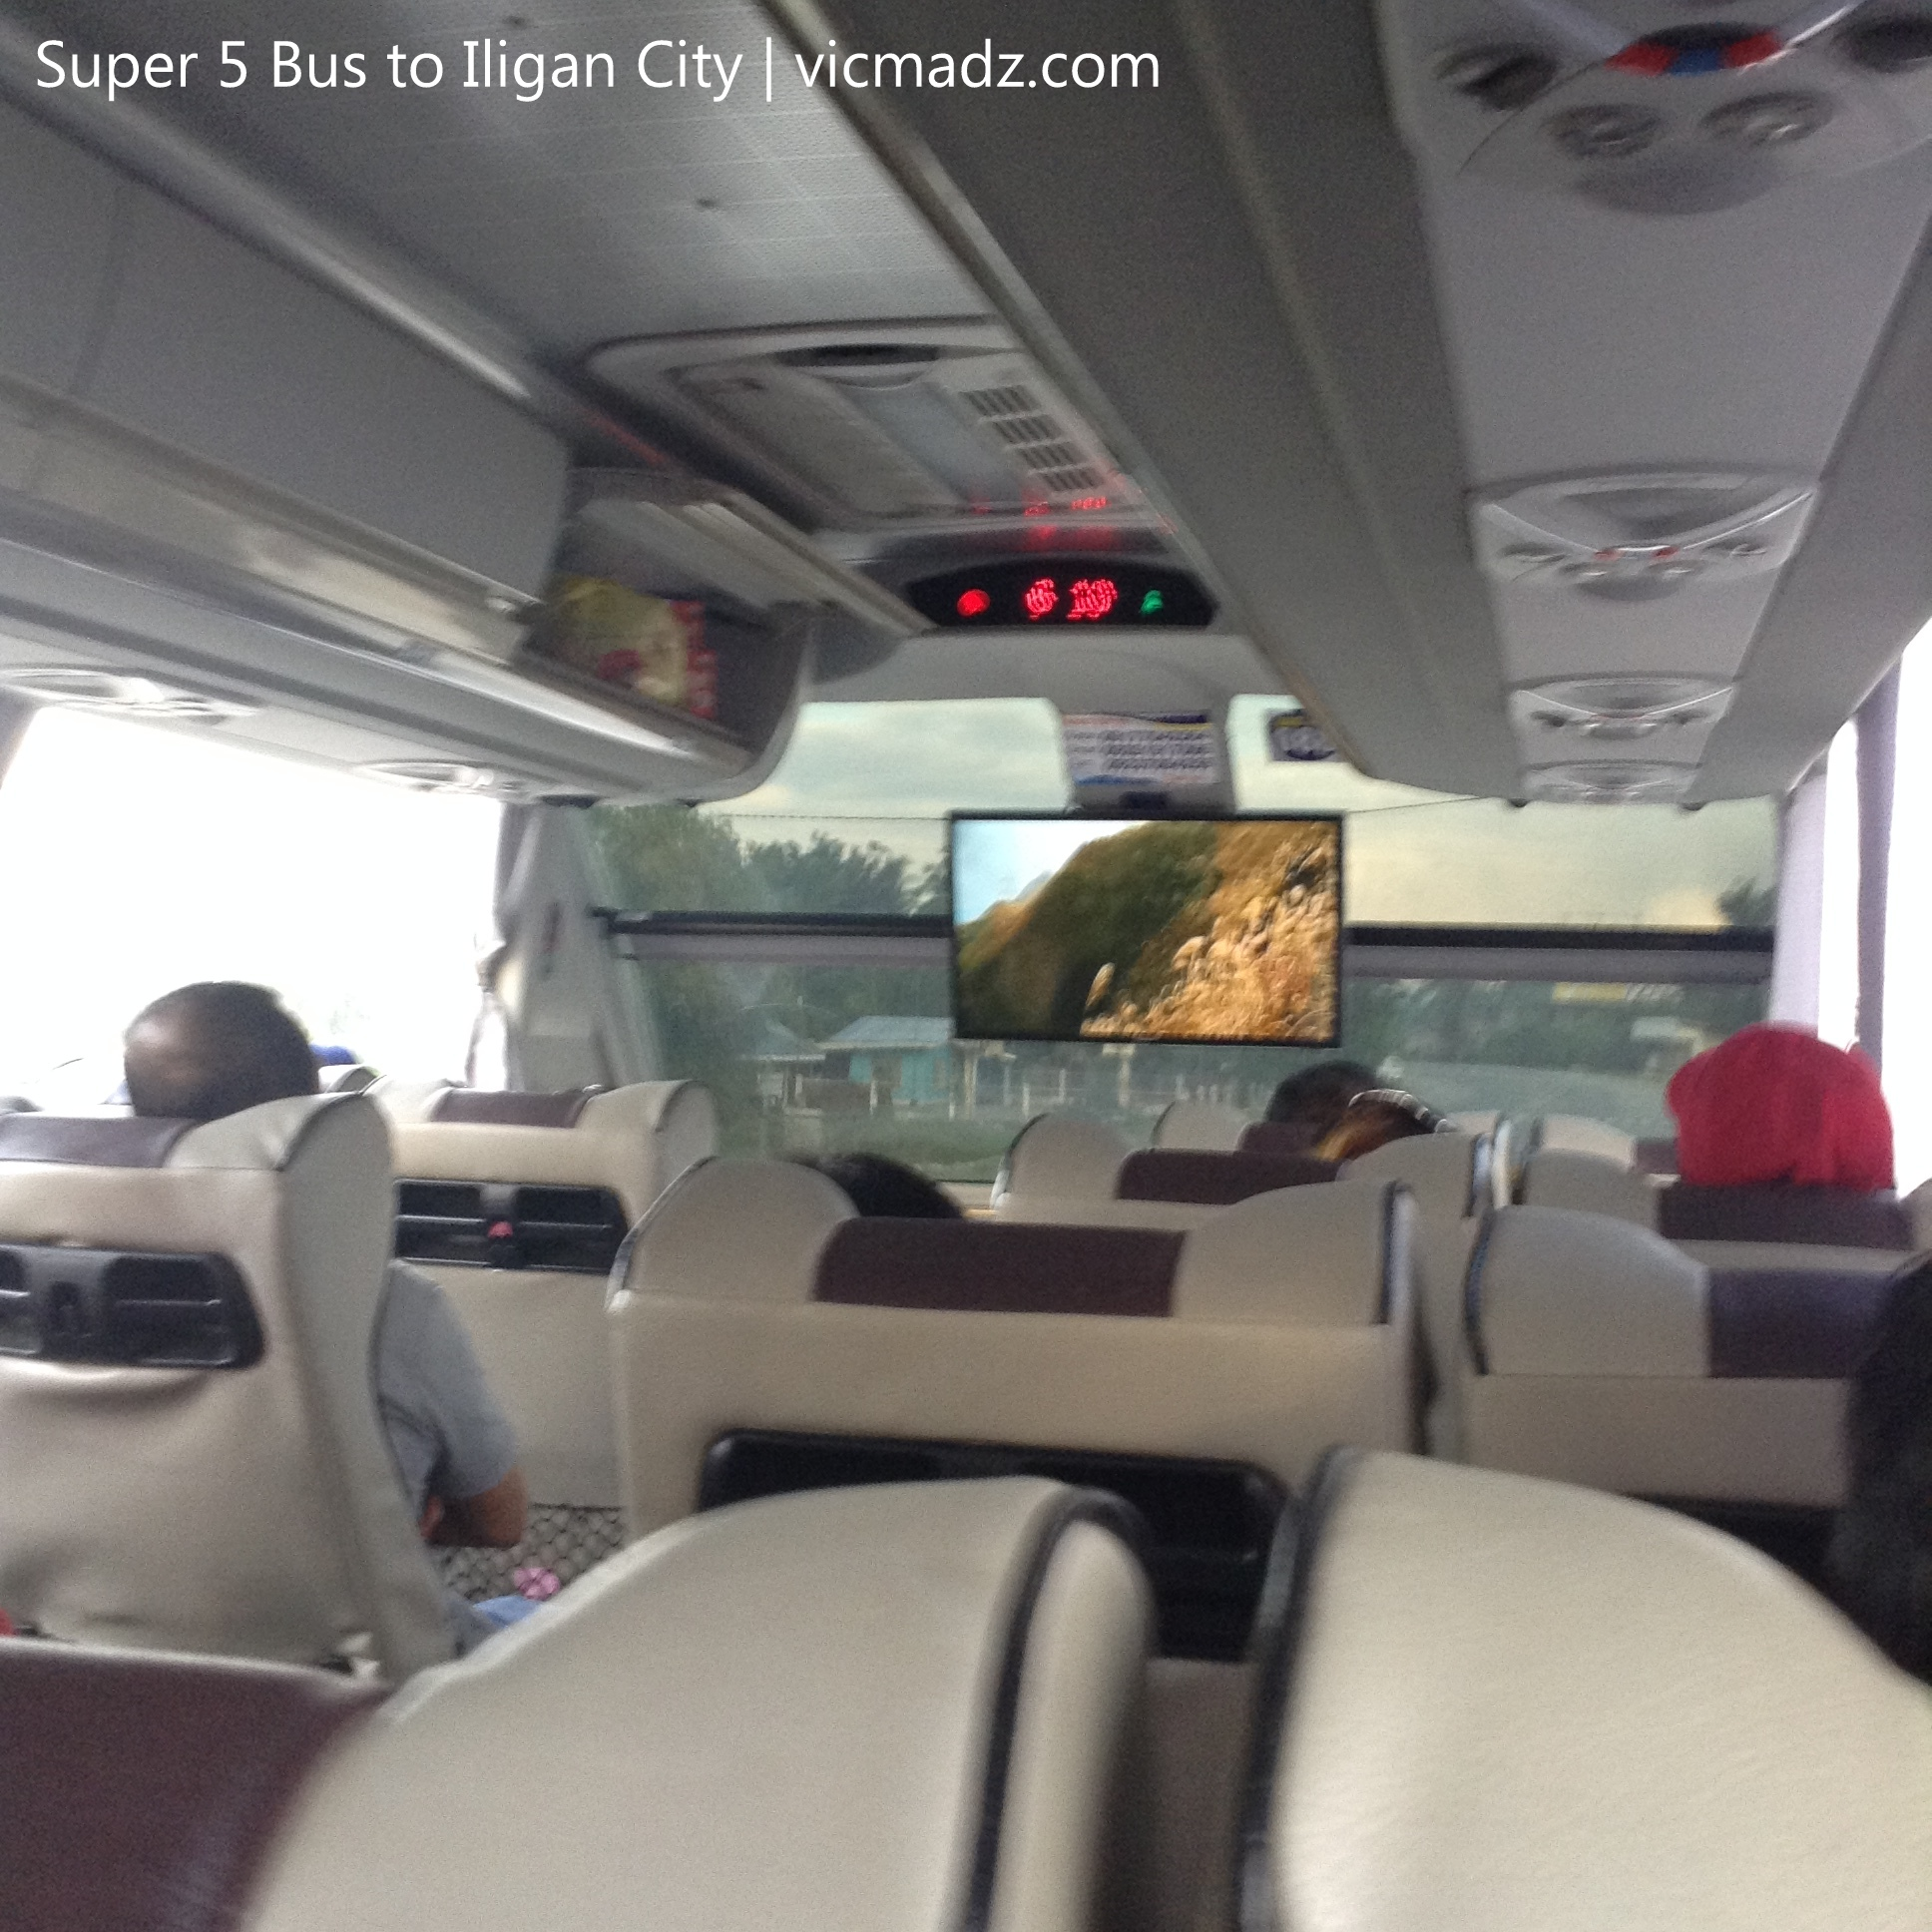 Super 5 Bus to Iligan City